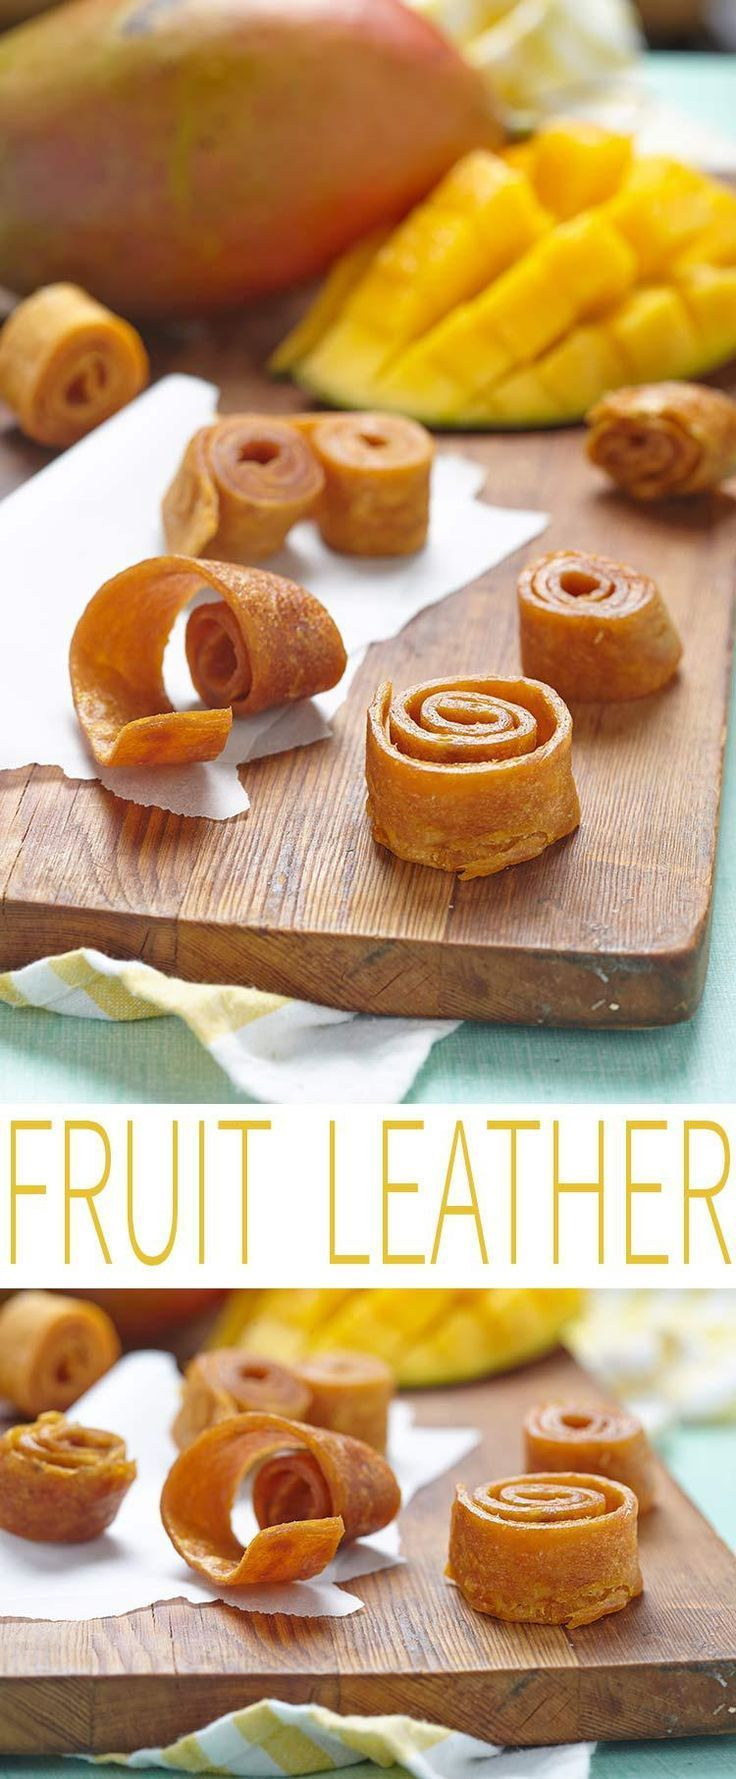 Fruit leather is a healthy snack for everyone. Think of fruit roll ups, but a healthy homemade version that you can feel good about eating. Make fruit leather for the perfect lunch snack.